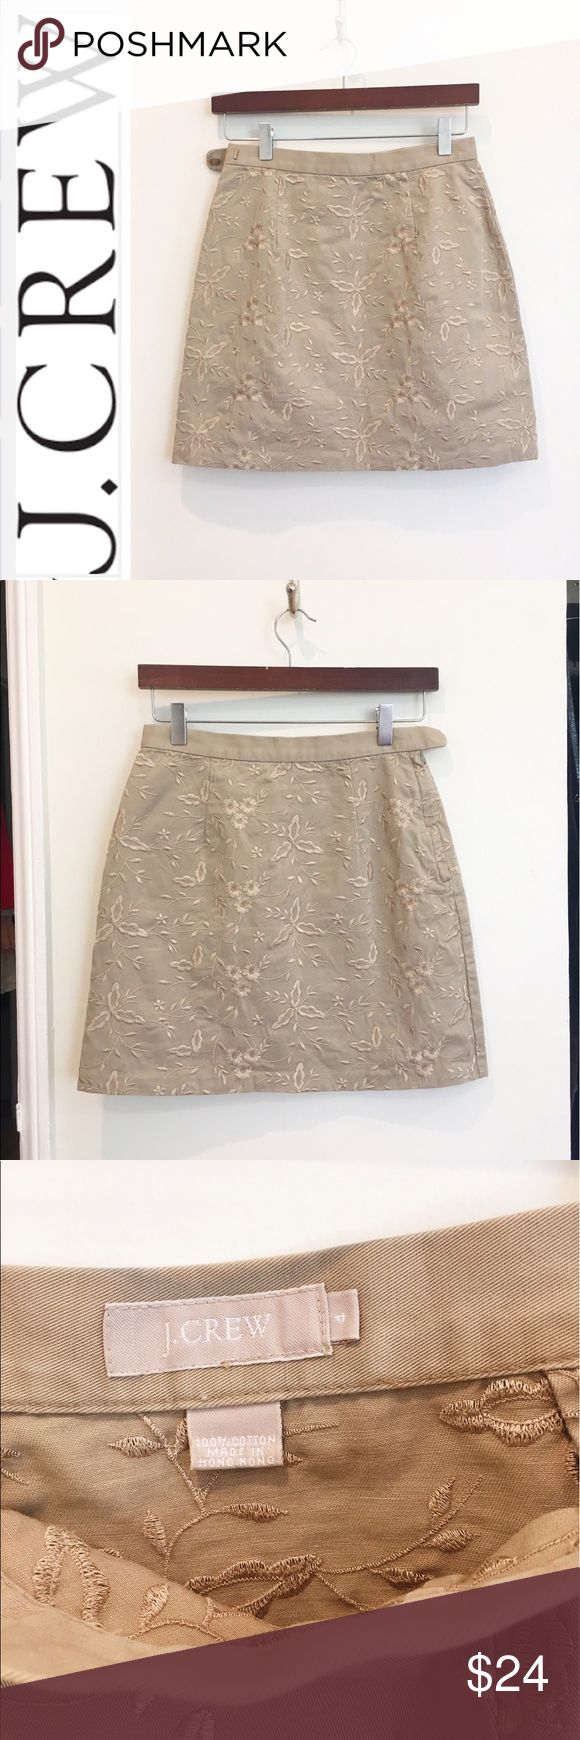 """J. Crew embroidered floral pencil skirt Preppy and cute embroidered khaki skirt from J. Crew. No condition issues. Side zip. Cotton. Darts. Length is about 17"""". Waist is about 13.5"""" flat. J. Crew Skirts Pencil"""